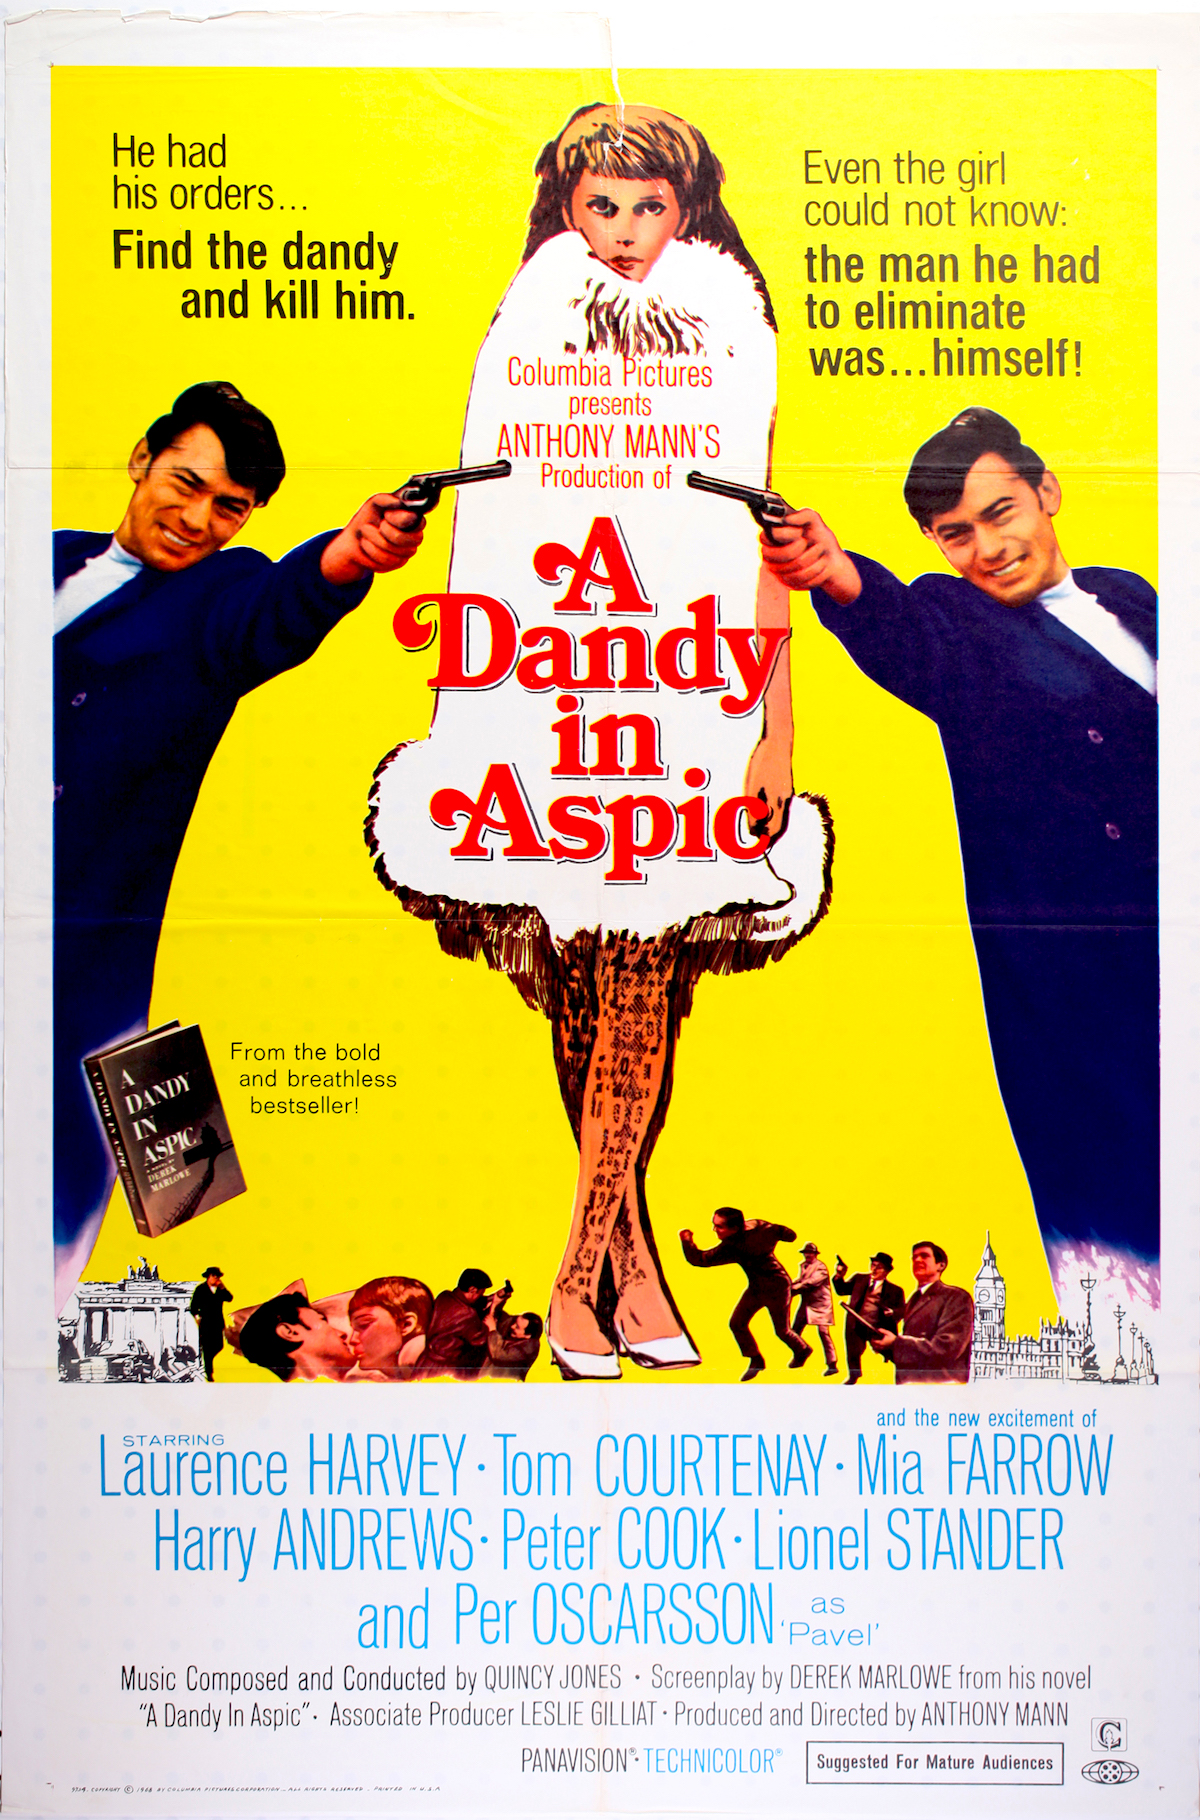 A Dandy in aspic, Mia Farrow, Laurence Harvey, Derek Marlowe